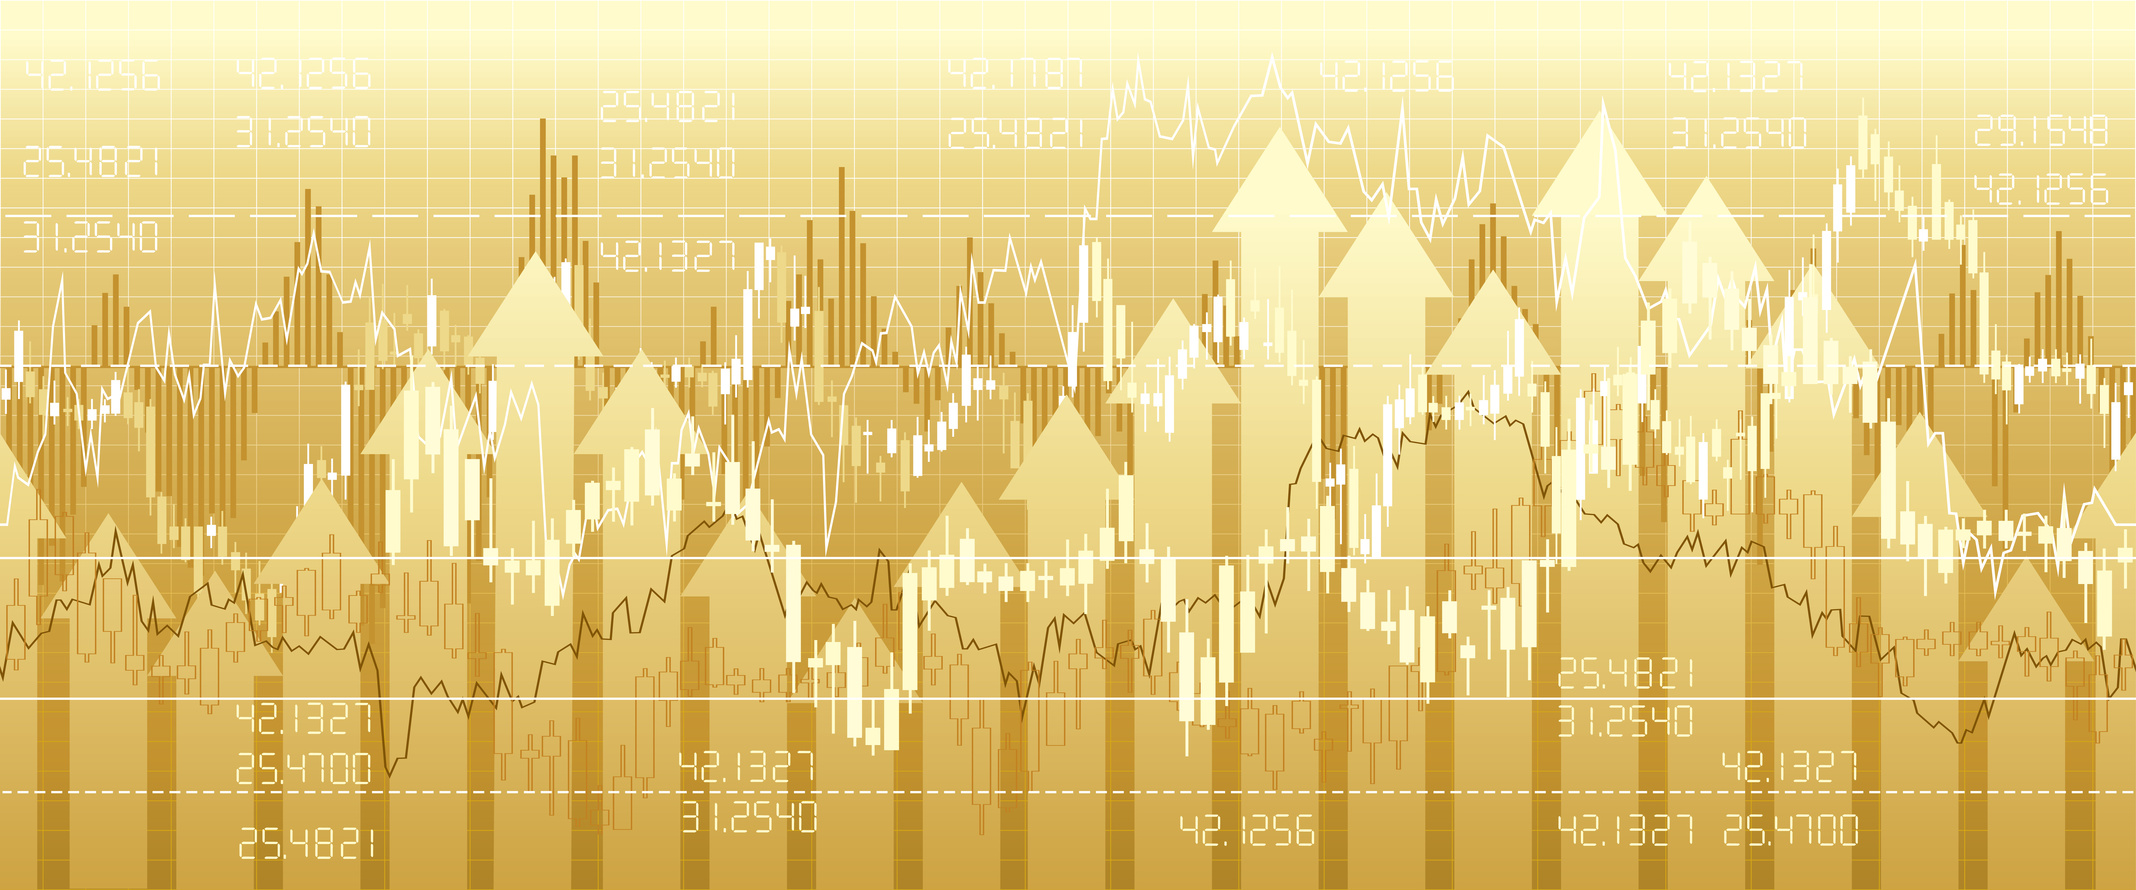 Financial market charts, quotes & analysis. Seamless border.